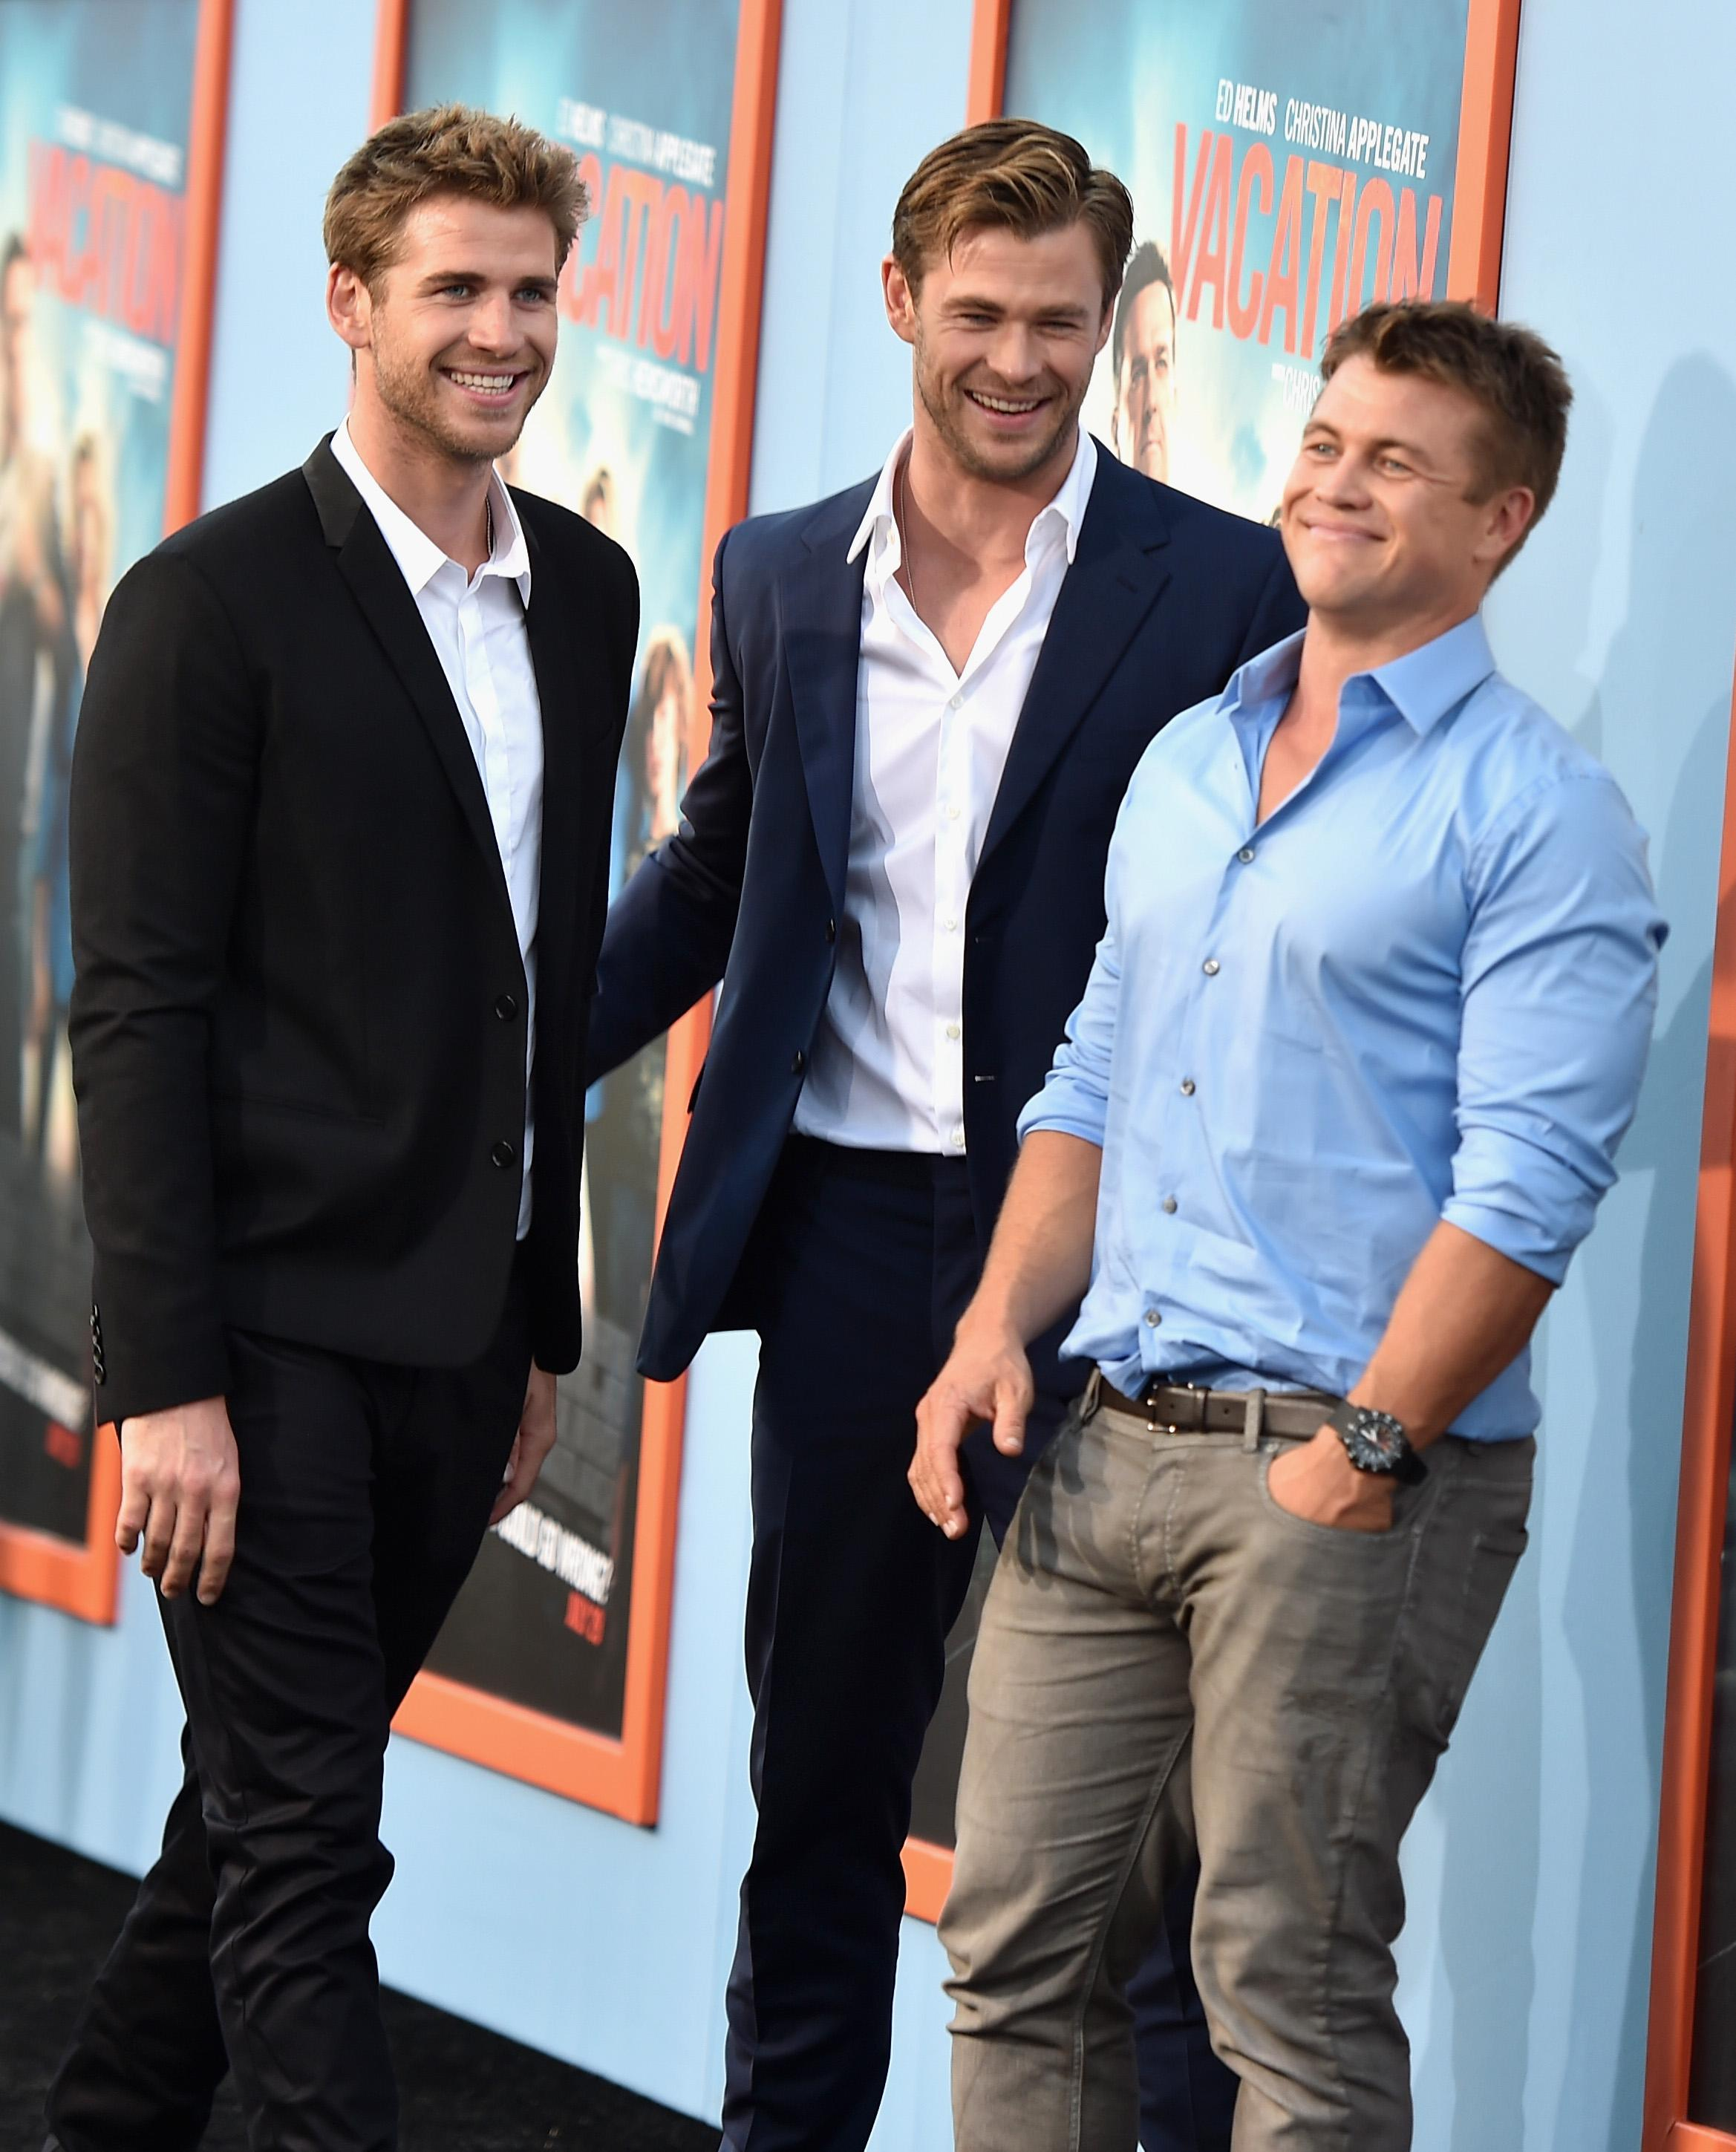 hemsworth brothers together